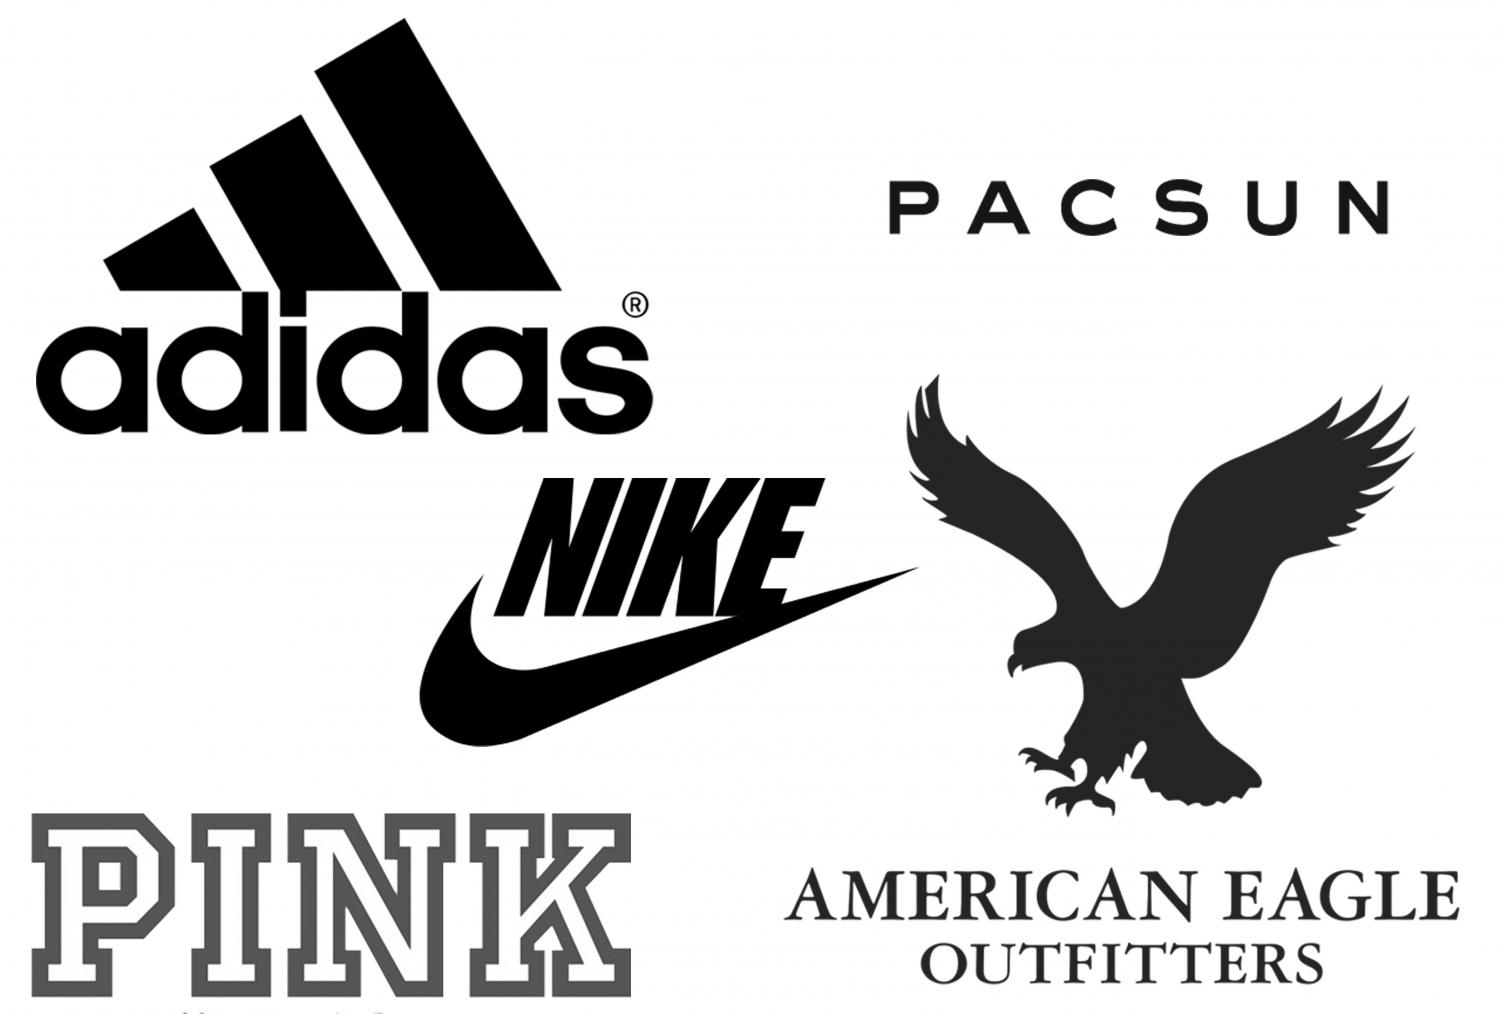 Many of these name brand companies are popular amongst teenagers.